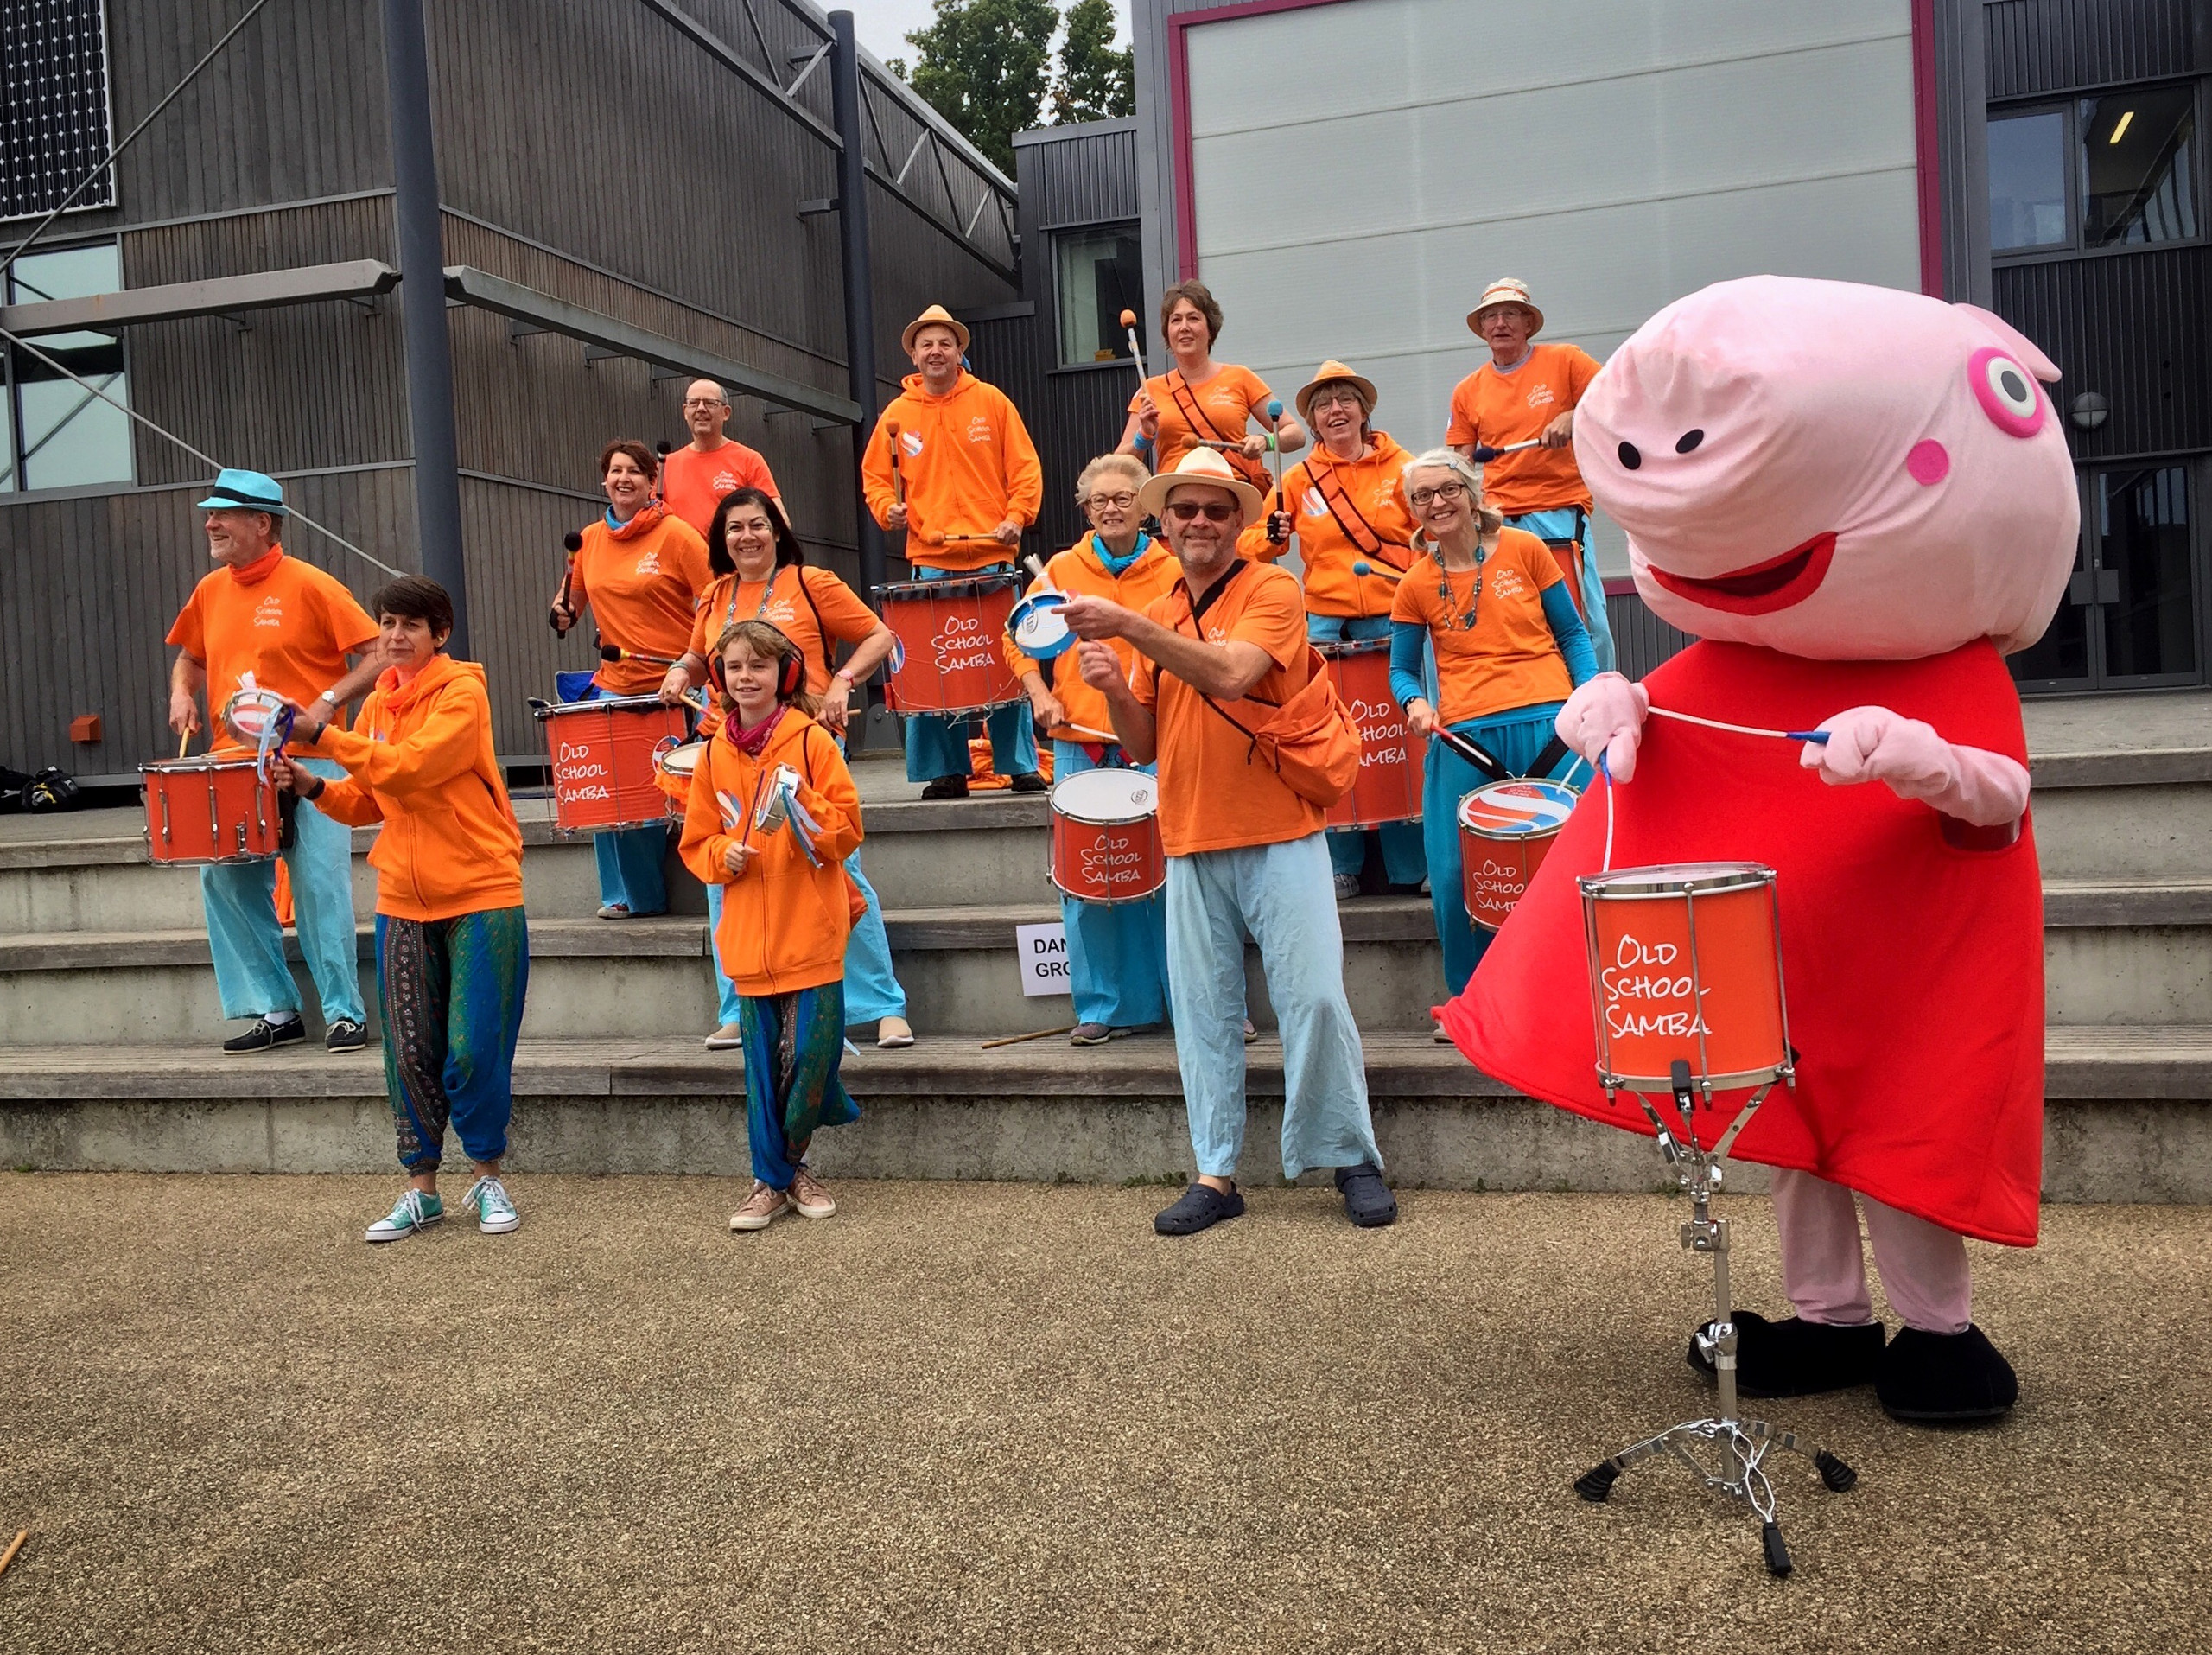 Peppa Pig and Old School Samba at the Holding On Letting Go Event